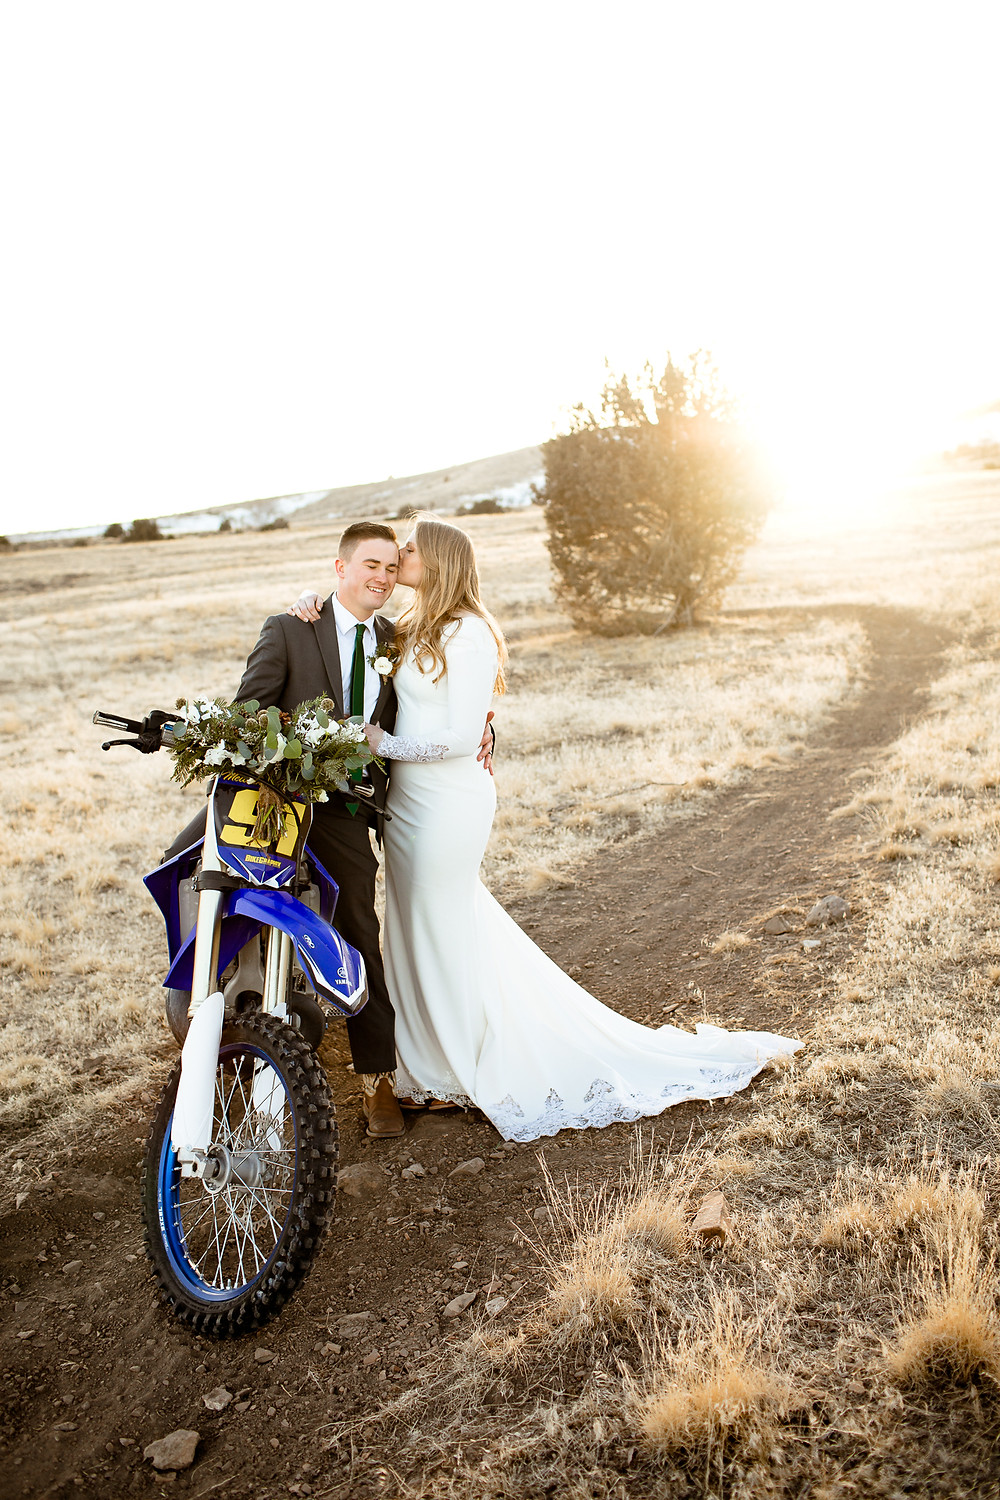 bride kissing her groom's face while he sits on a dirtbike